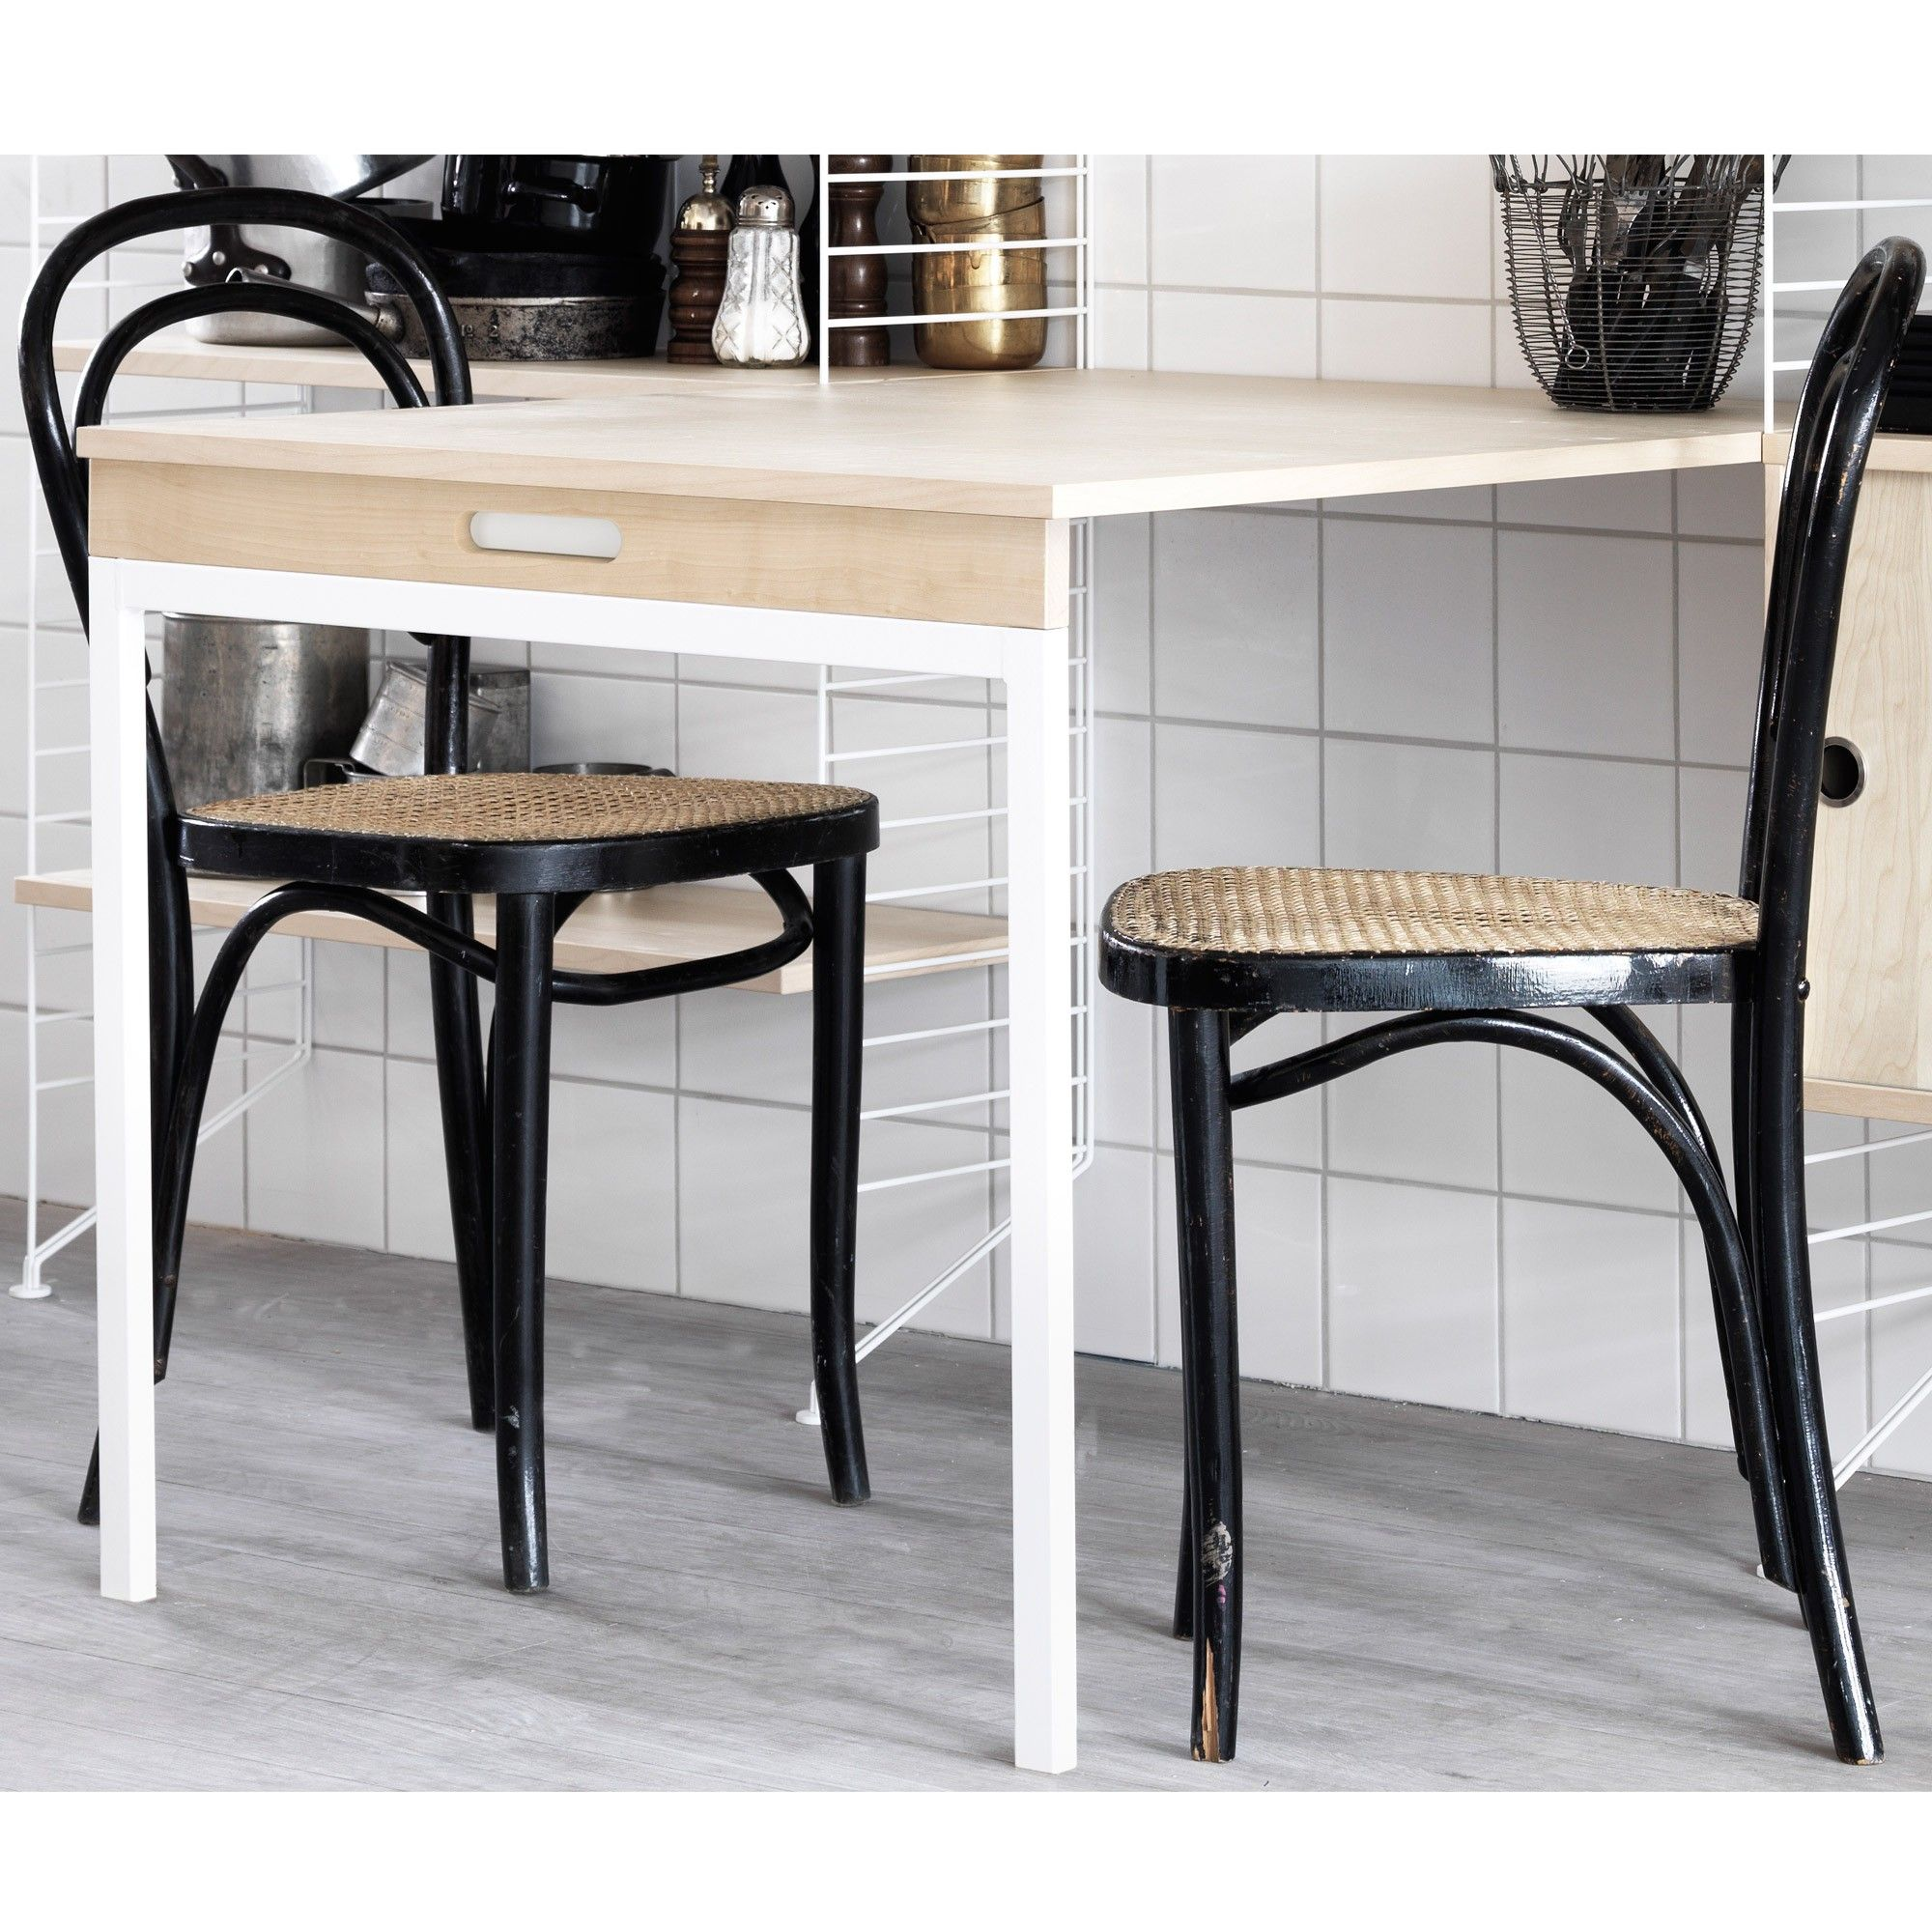 Unique Fold Away Dining Table: Wall Fold Away Dining Table ...